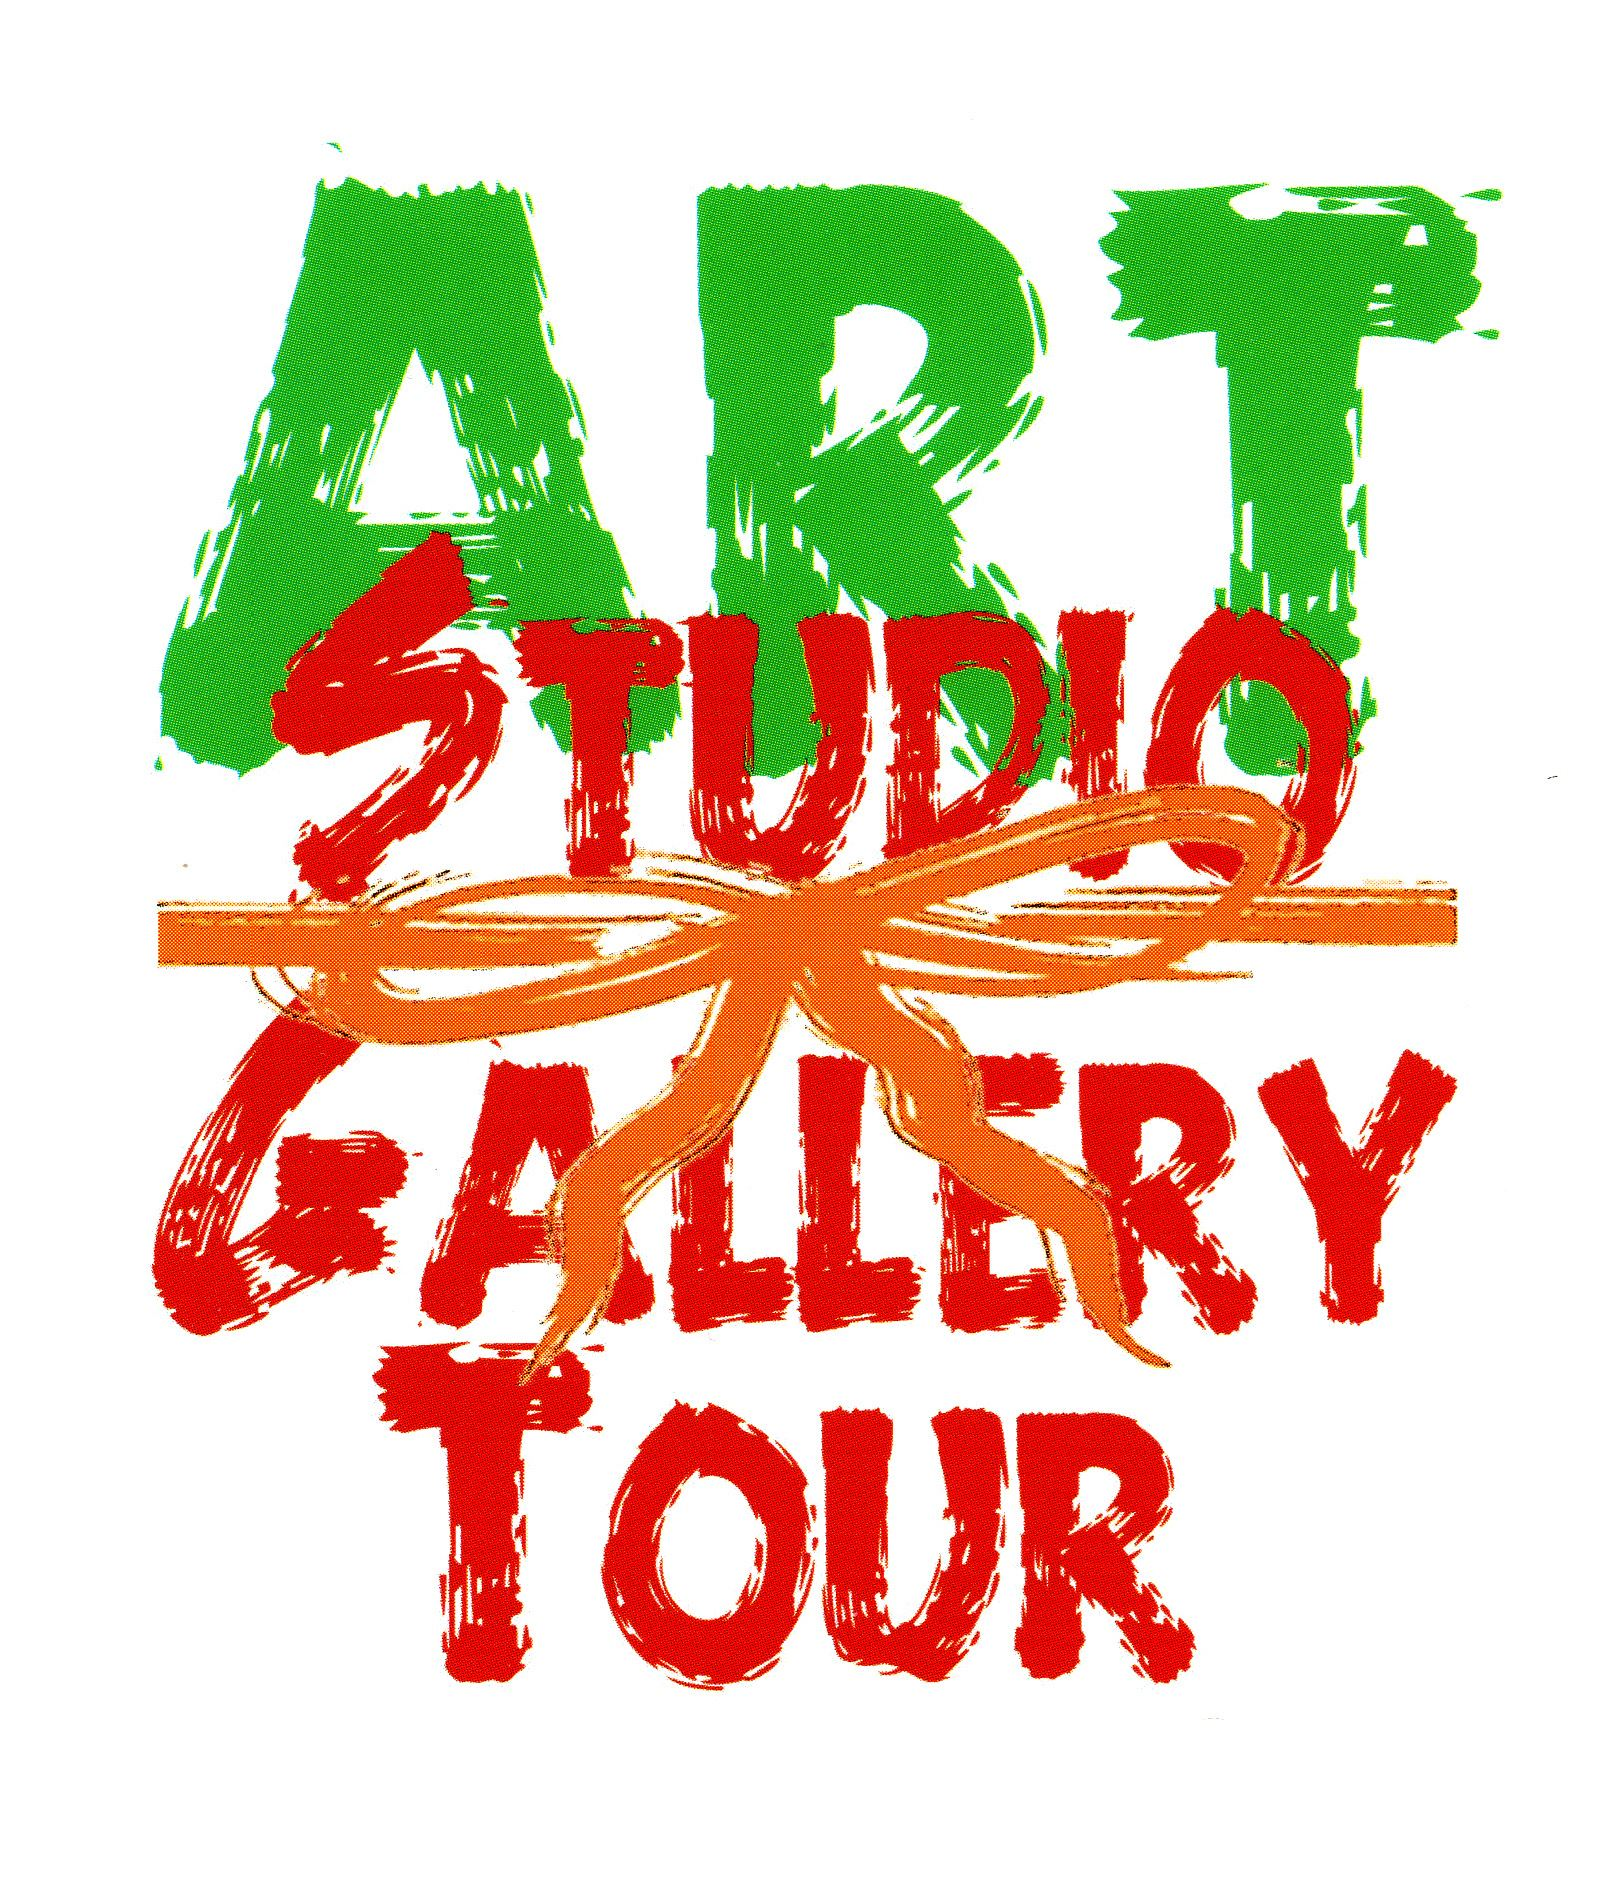 art and gallery tour